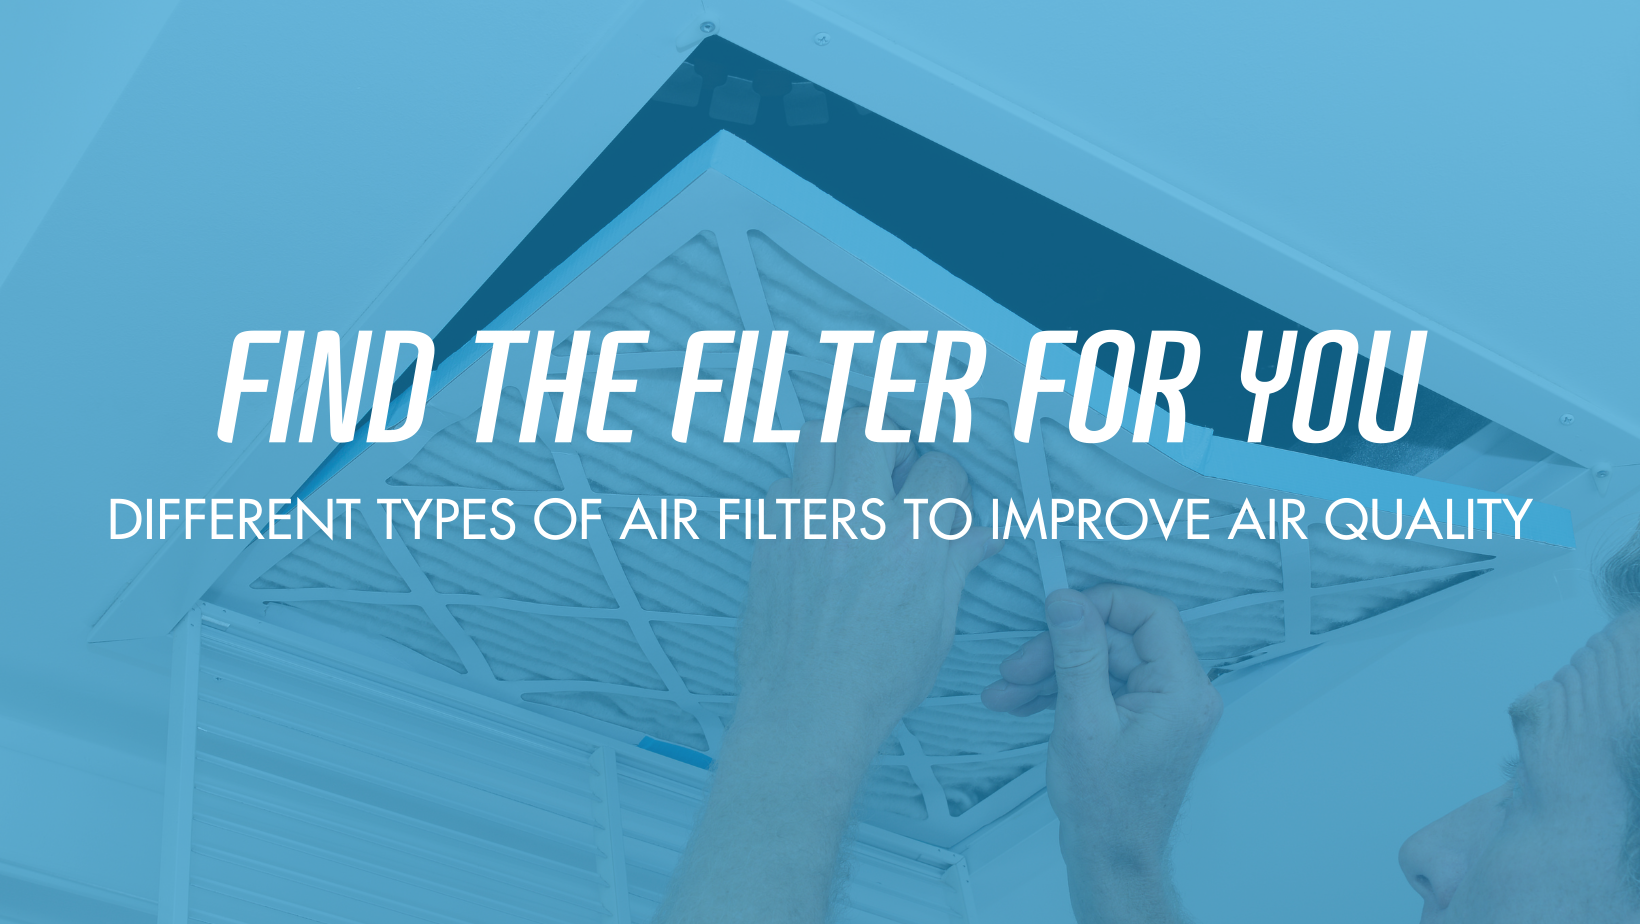 Filtering Through The Types of Air Filters